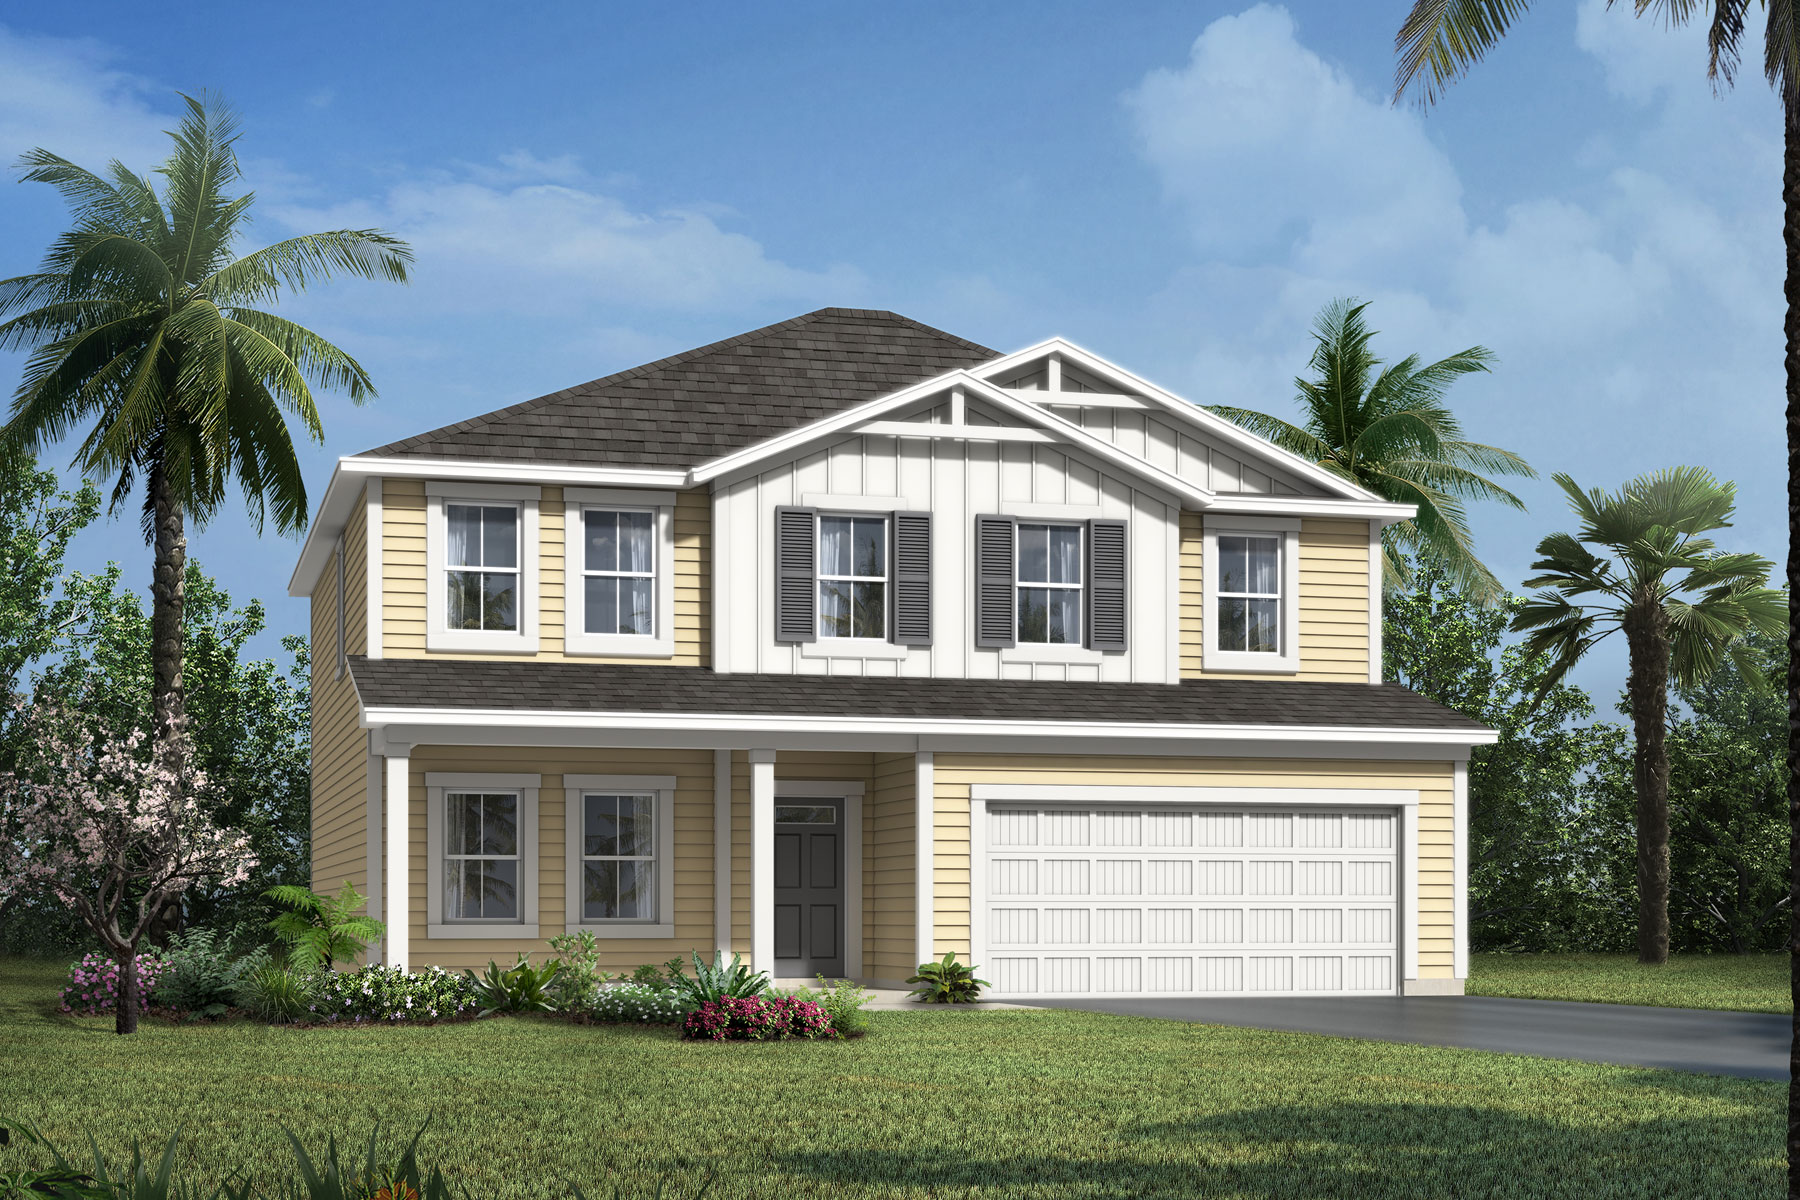 Willow Plan ElevationFarmhouse_WellsCreek_Willow at Wells Creek in Jacksonville Florida by Mattamy Homes